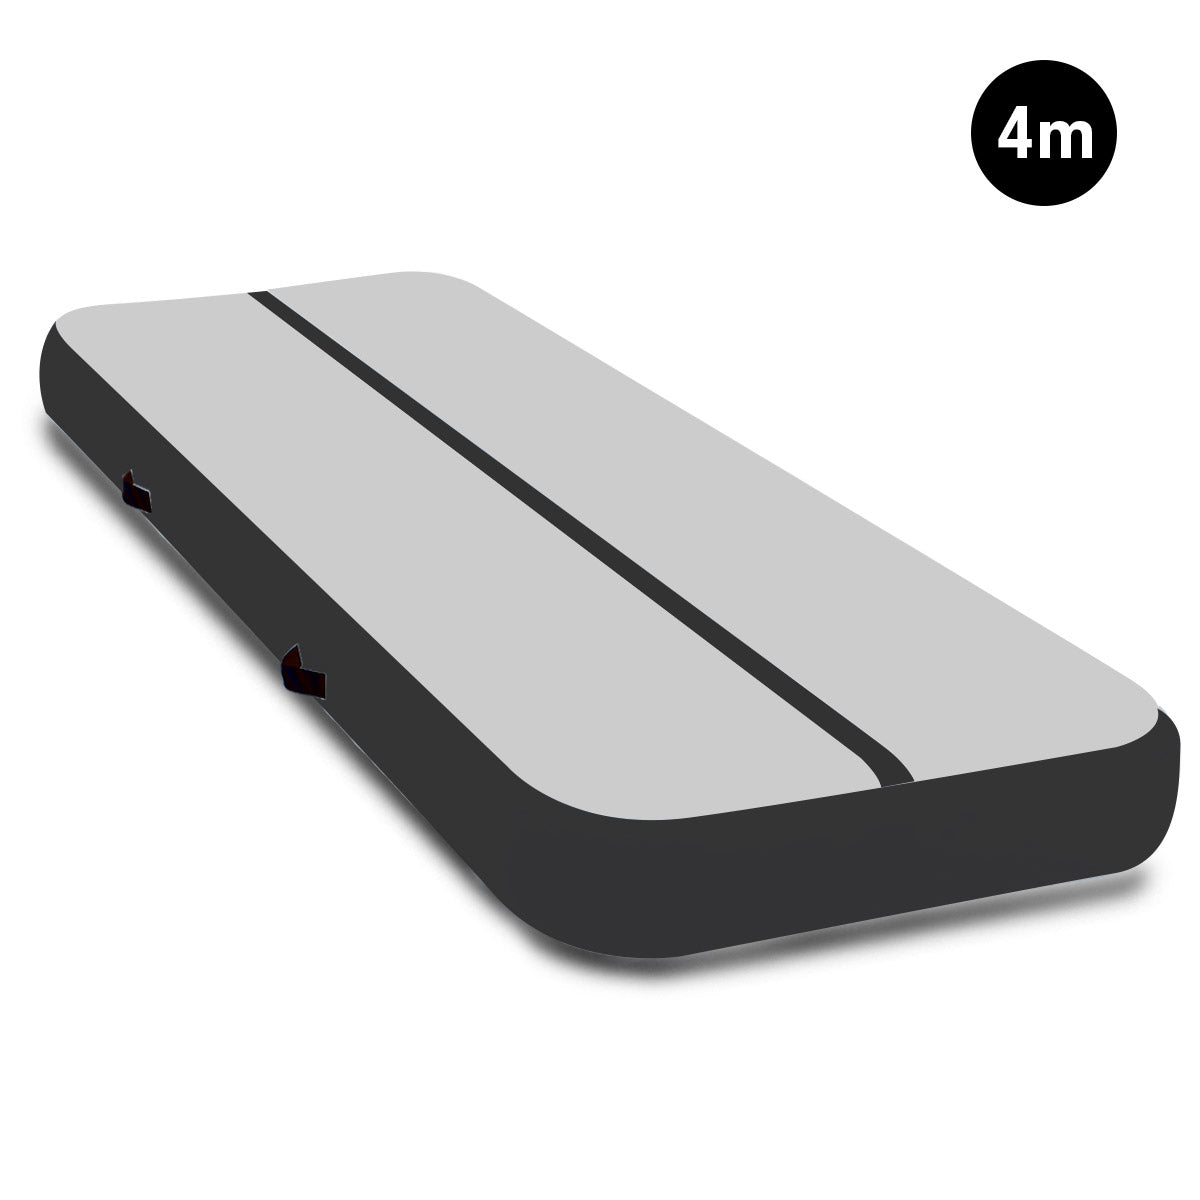 4m Airtrack Tumbling Mat Gymnastics Exercise Air Track - Grey Black